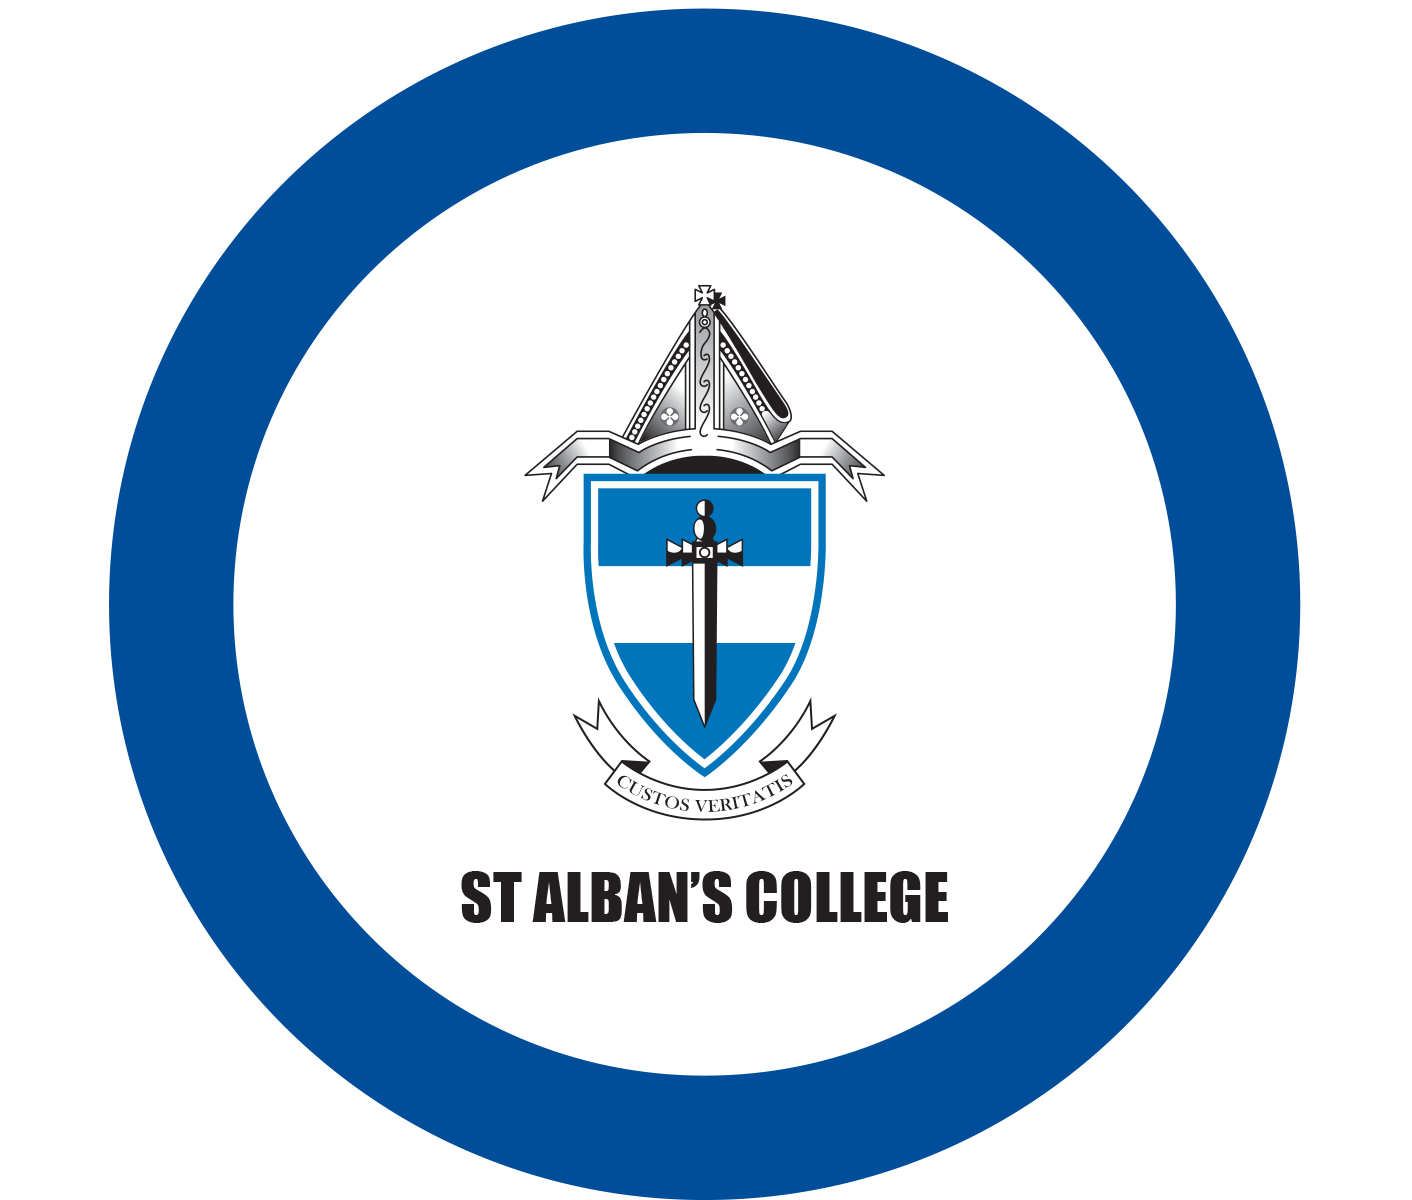 St Alban's Archive